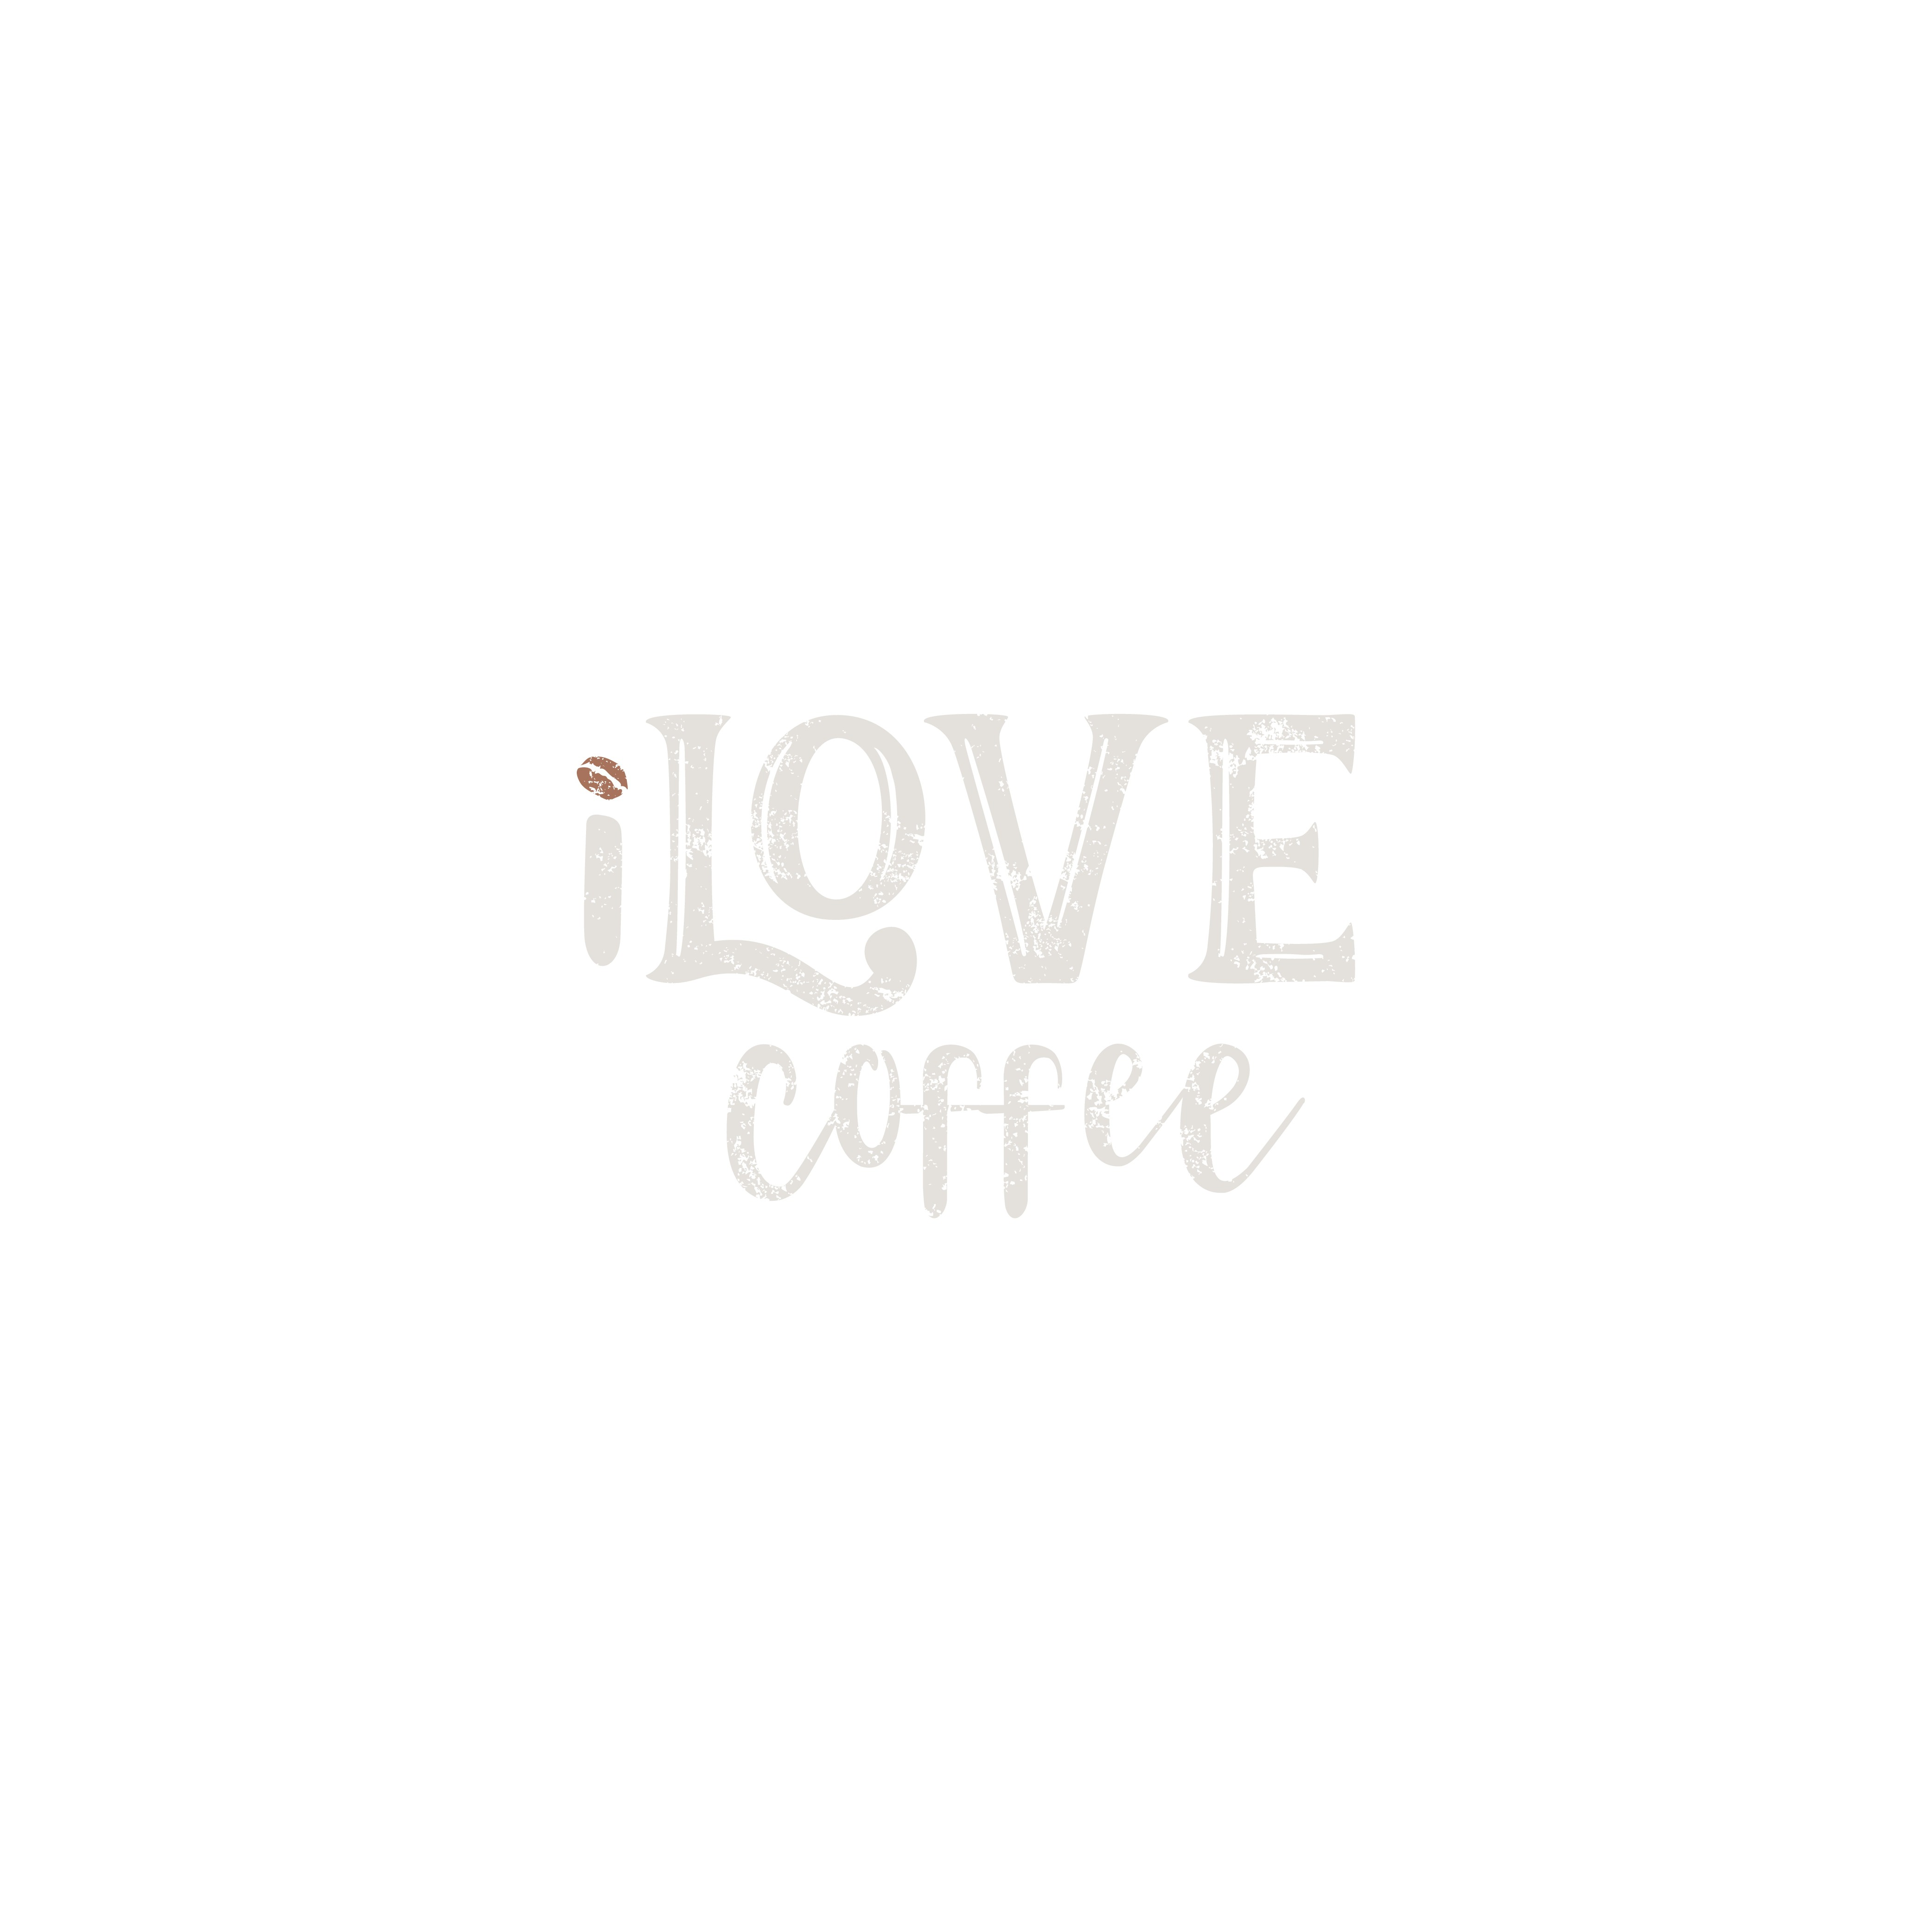 Create a logo for a new specialty coffee business that brands our fun, positive energy!  iLove Coffee is the spelling.